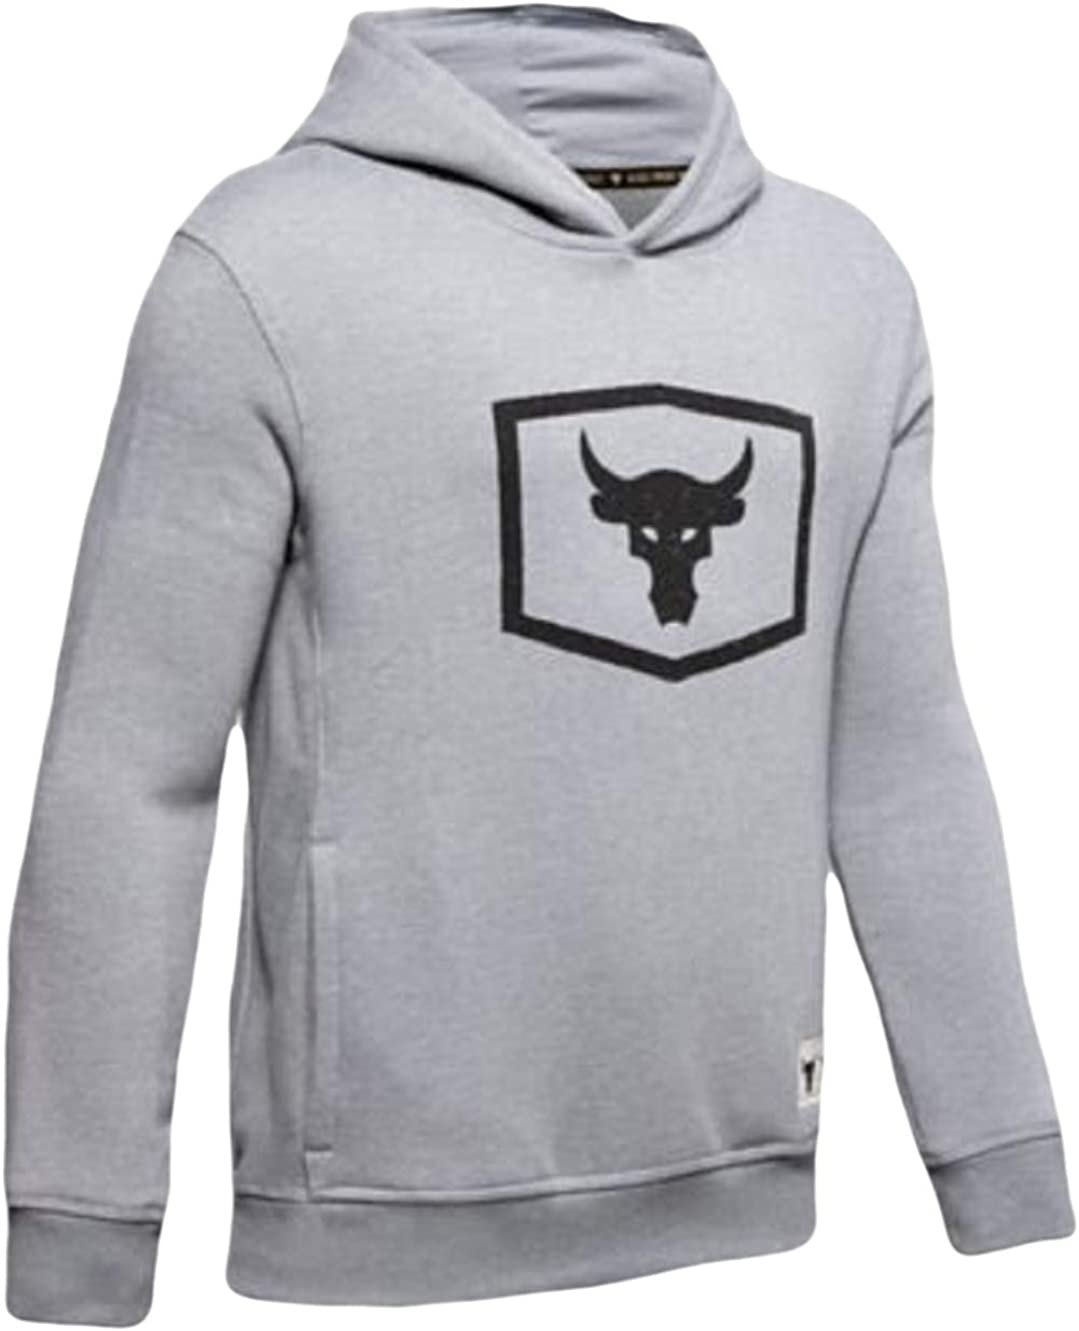 Under Armour YOUTH BOYS Project Rock Warm-Up Hoodie